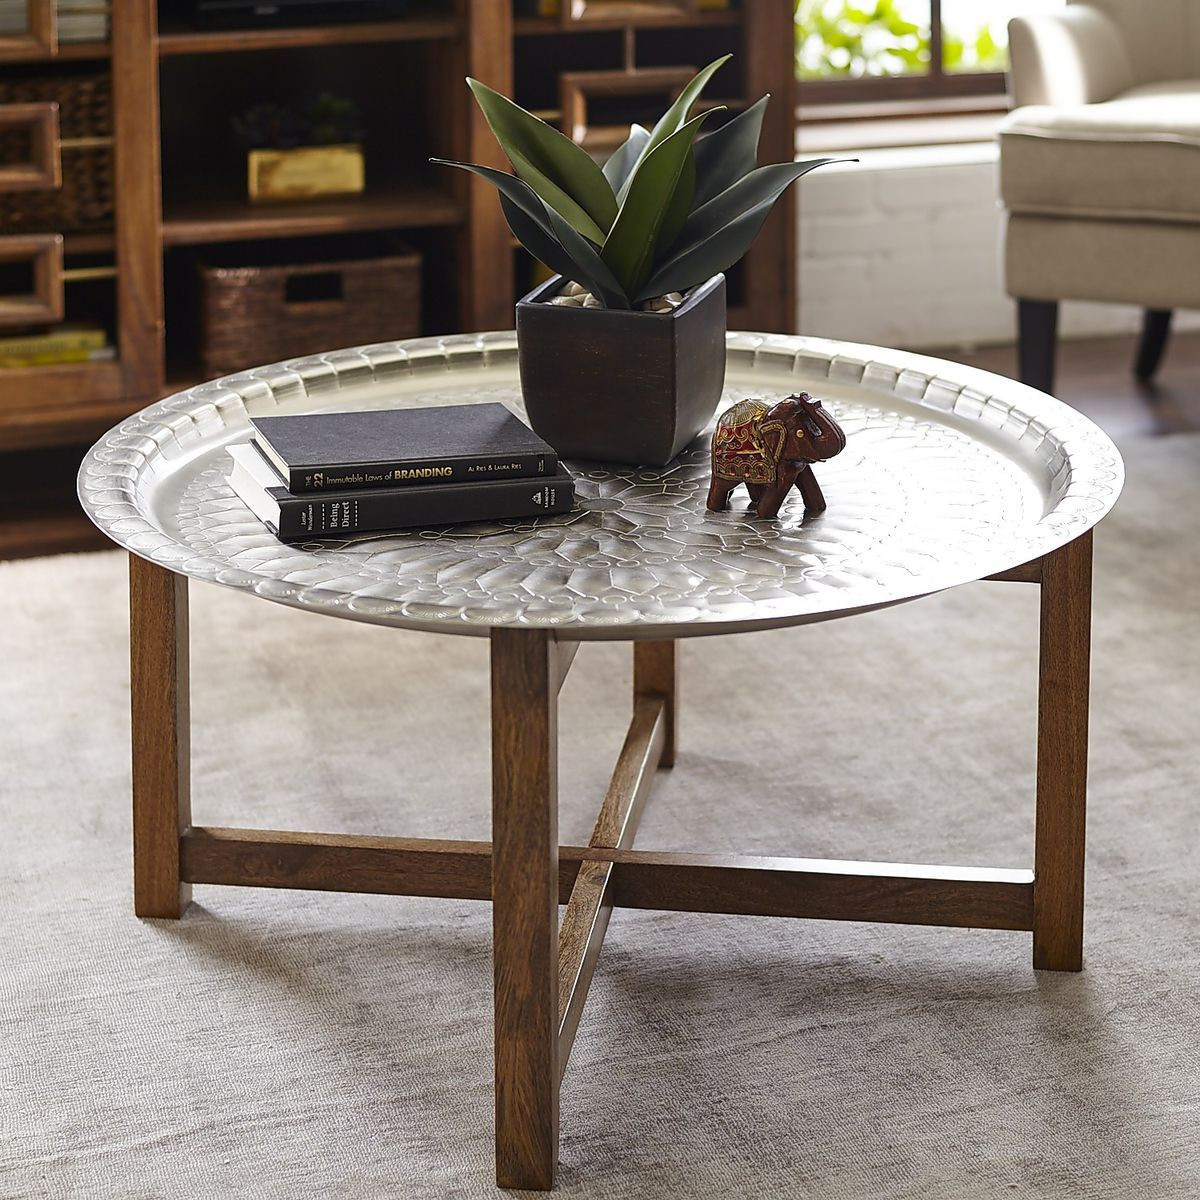 pier one imports coffee table unique accent tables end new lovable informer argos breakfast and chairs antique storage trunk rustic outdoor chests trunks small lamps vintage card